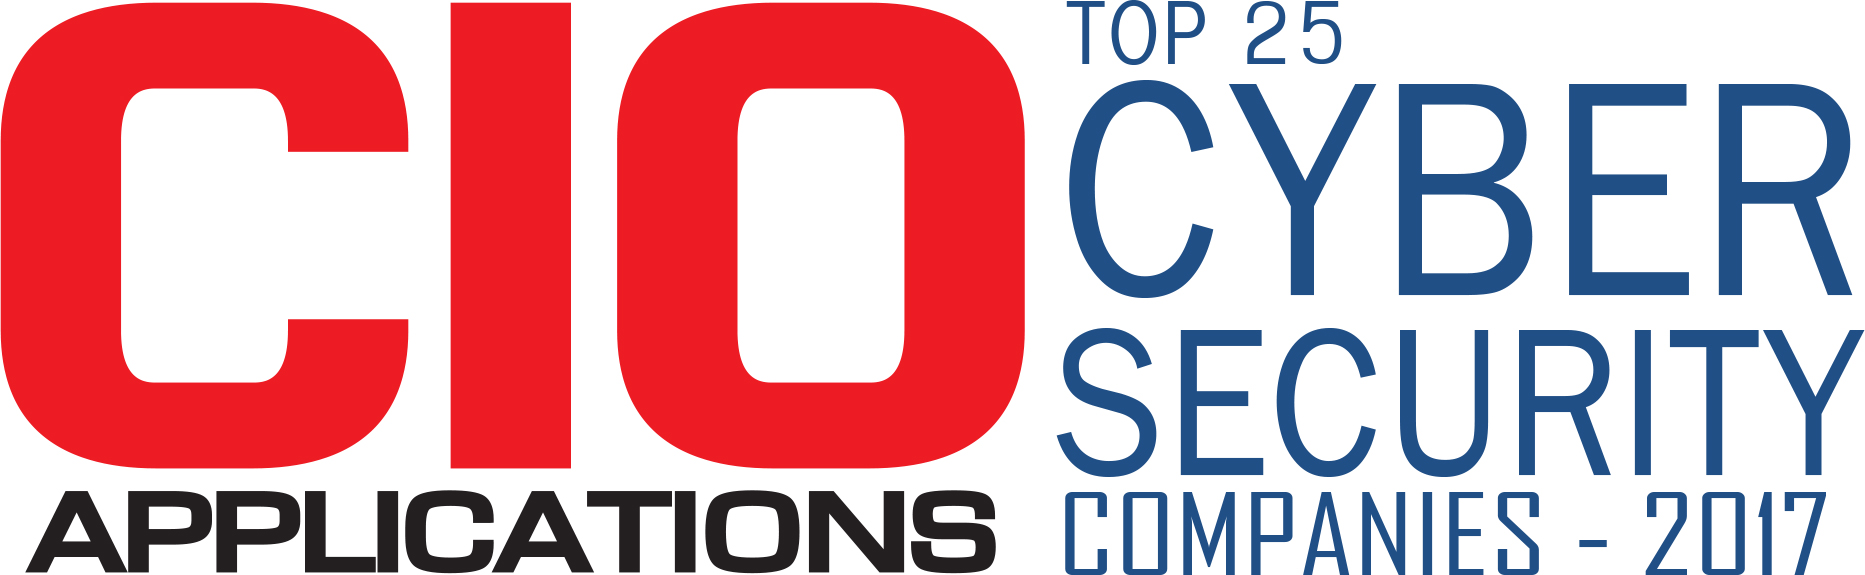 Top 25 Cyber Security Companies - 2017